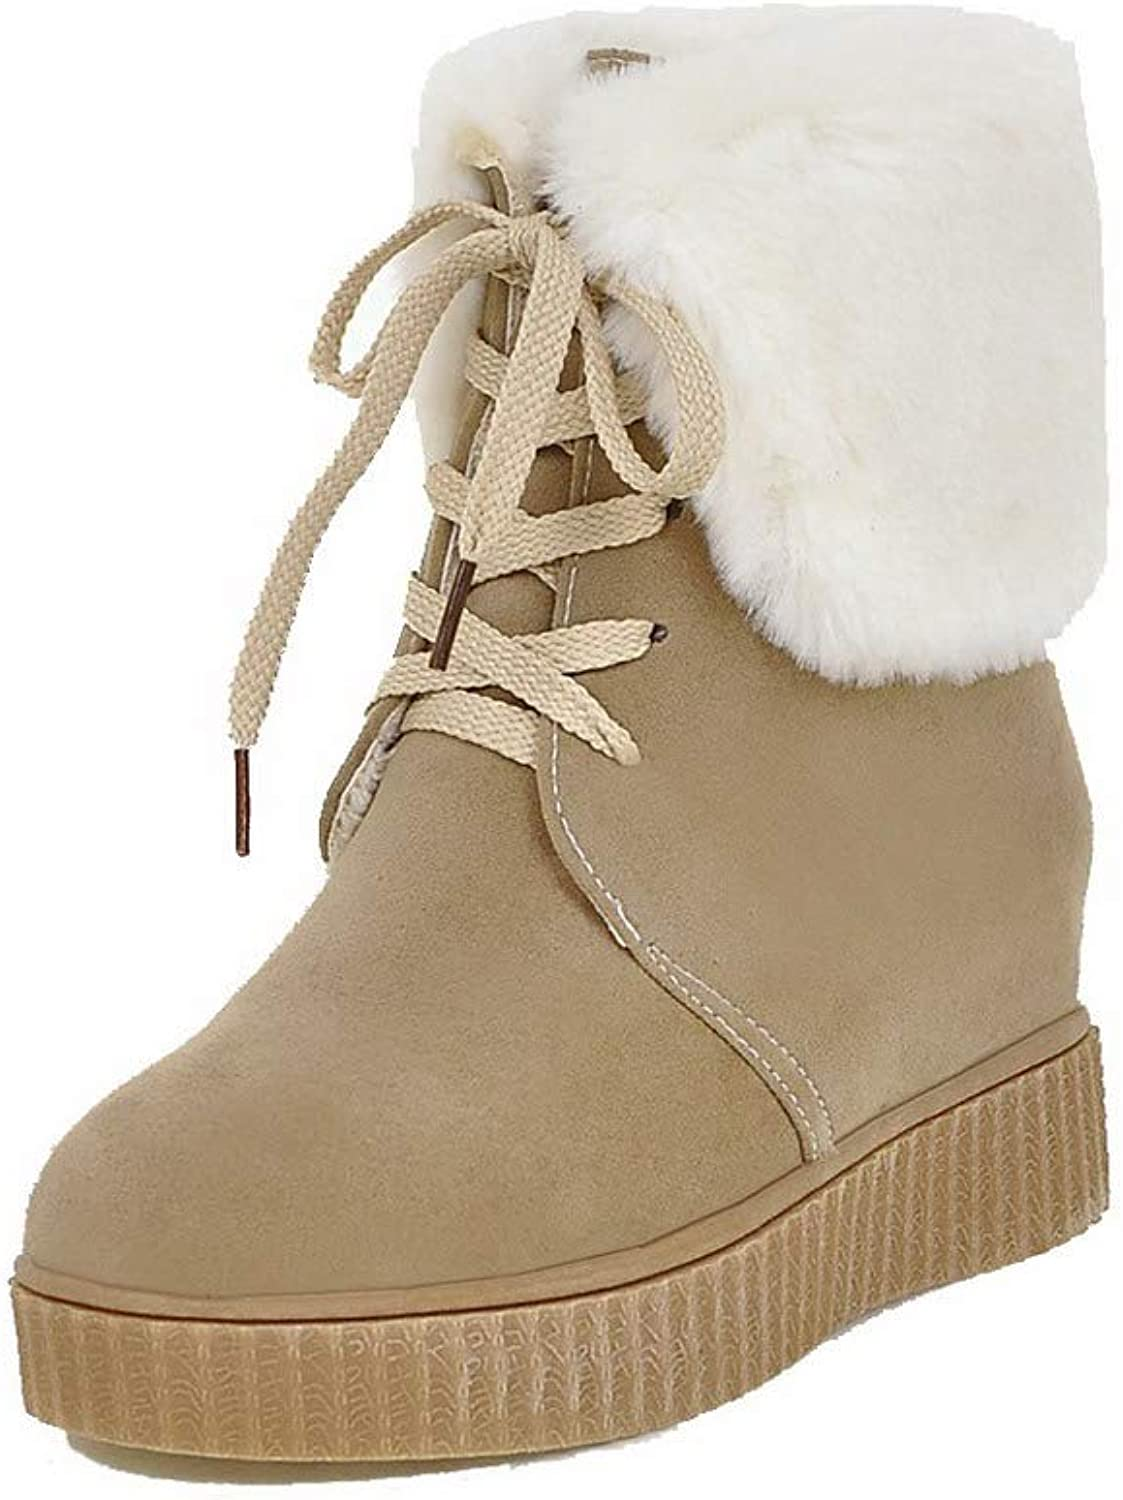 WeiPoot Women's Kitten-Heels Assorted color Closed-Toe Frosted Lace-Up Boots, EGHXH123544